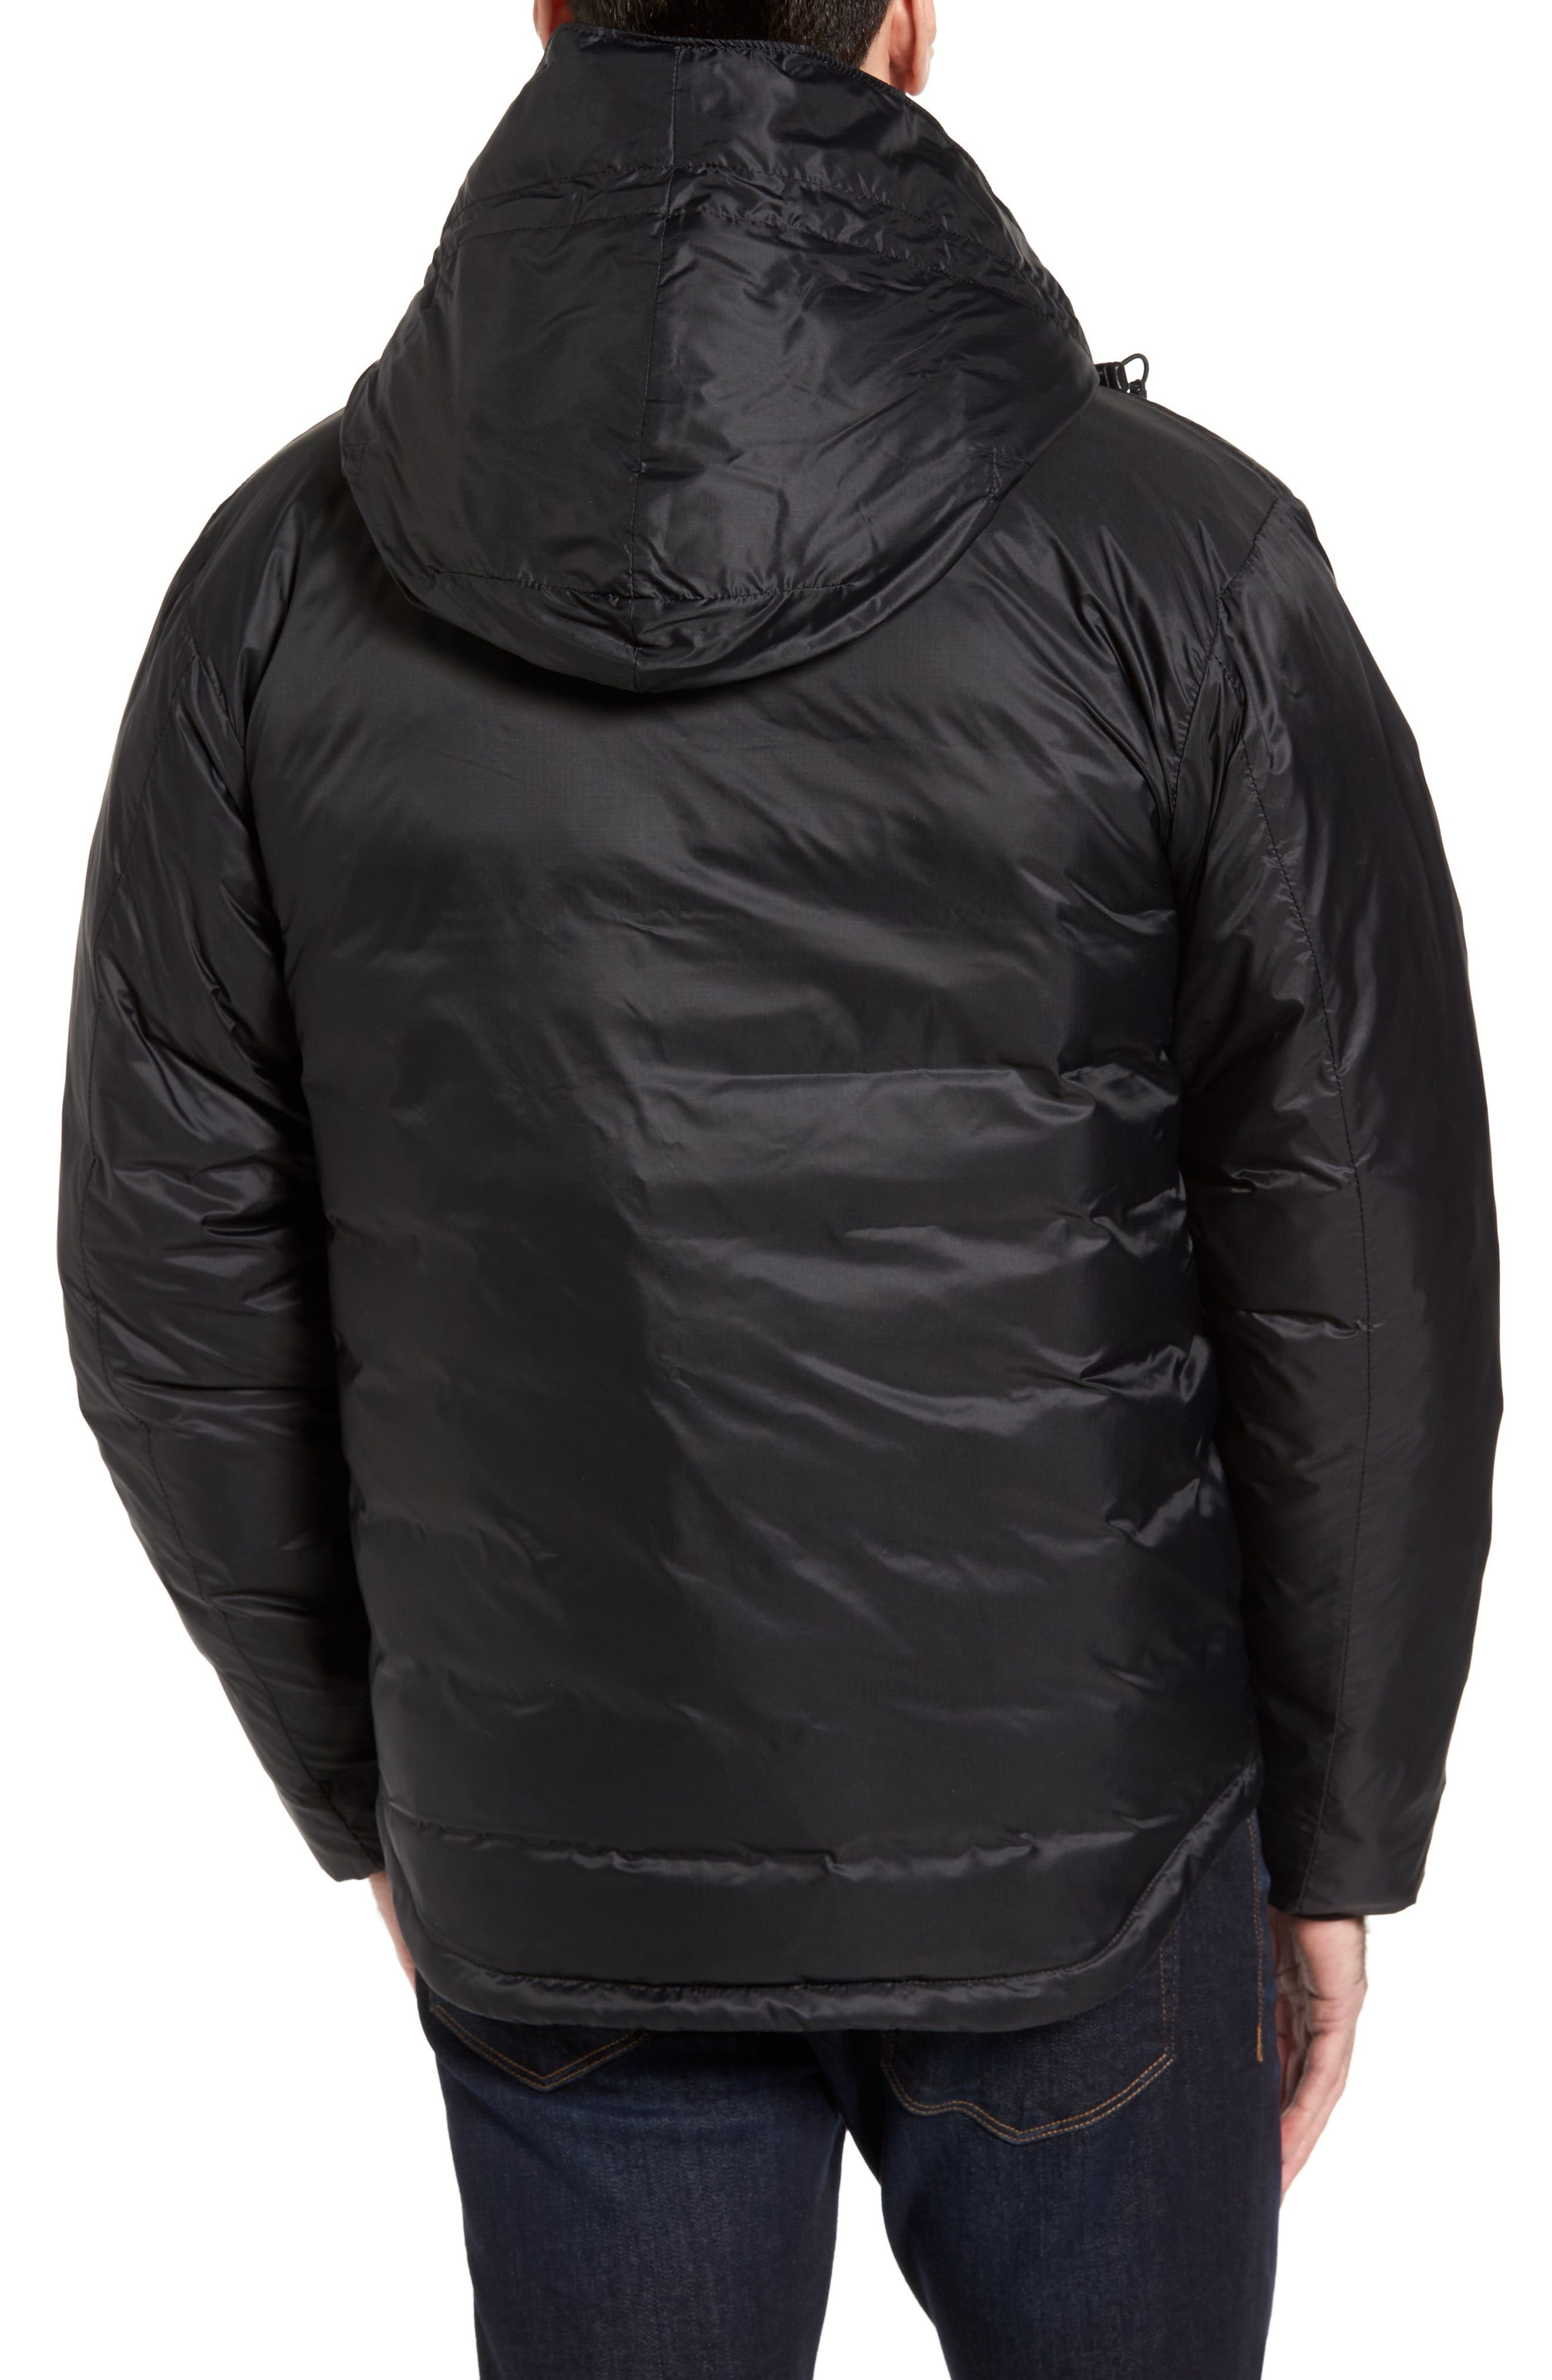 Lodge Packable Down Jacket,                             Alternate thumbnail 2, color,                             Black/ Black